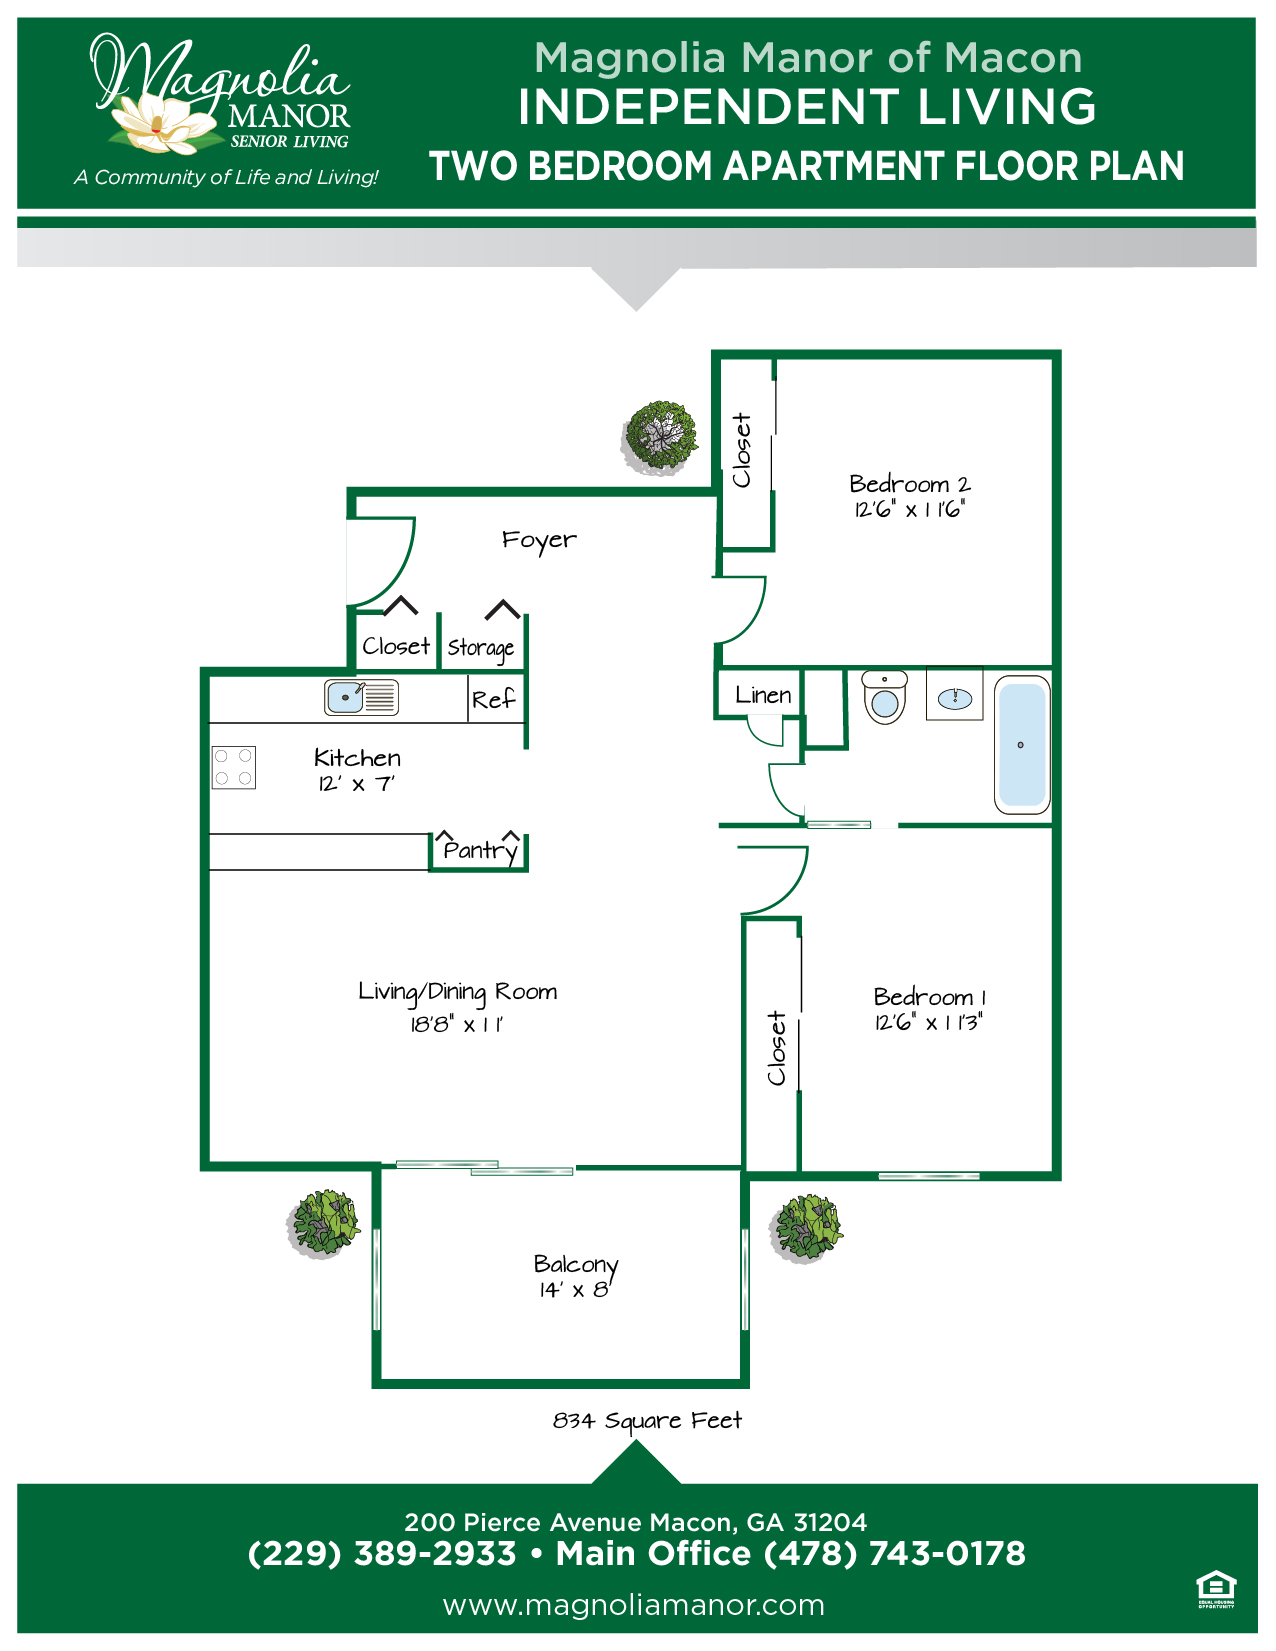 00344 MACON IL Floor Plan two Bedroom Apt-01